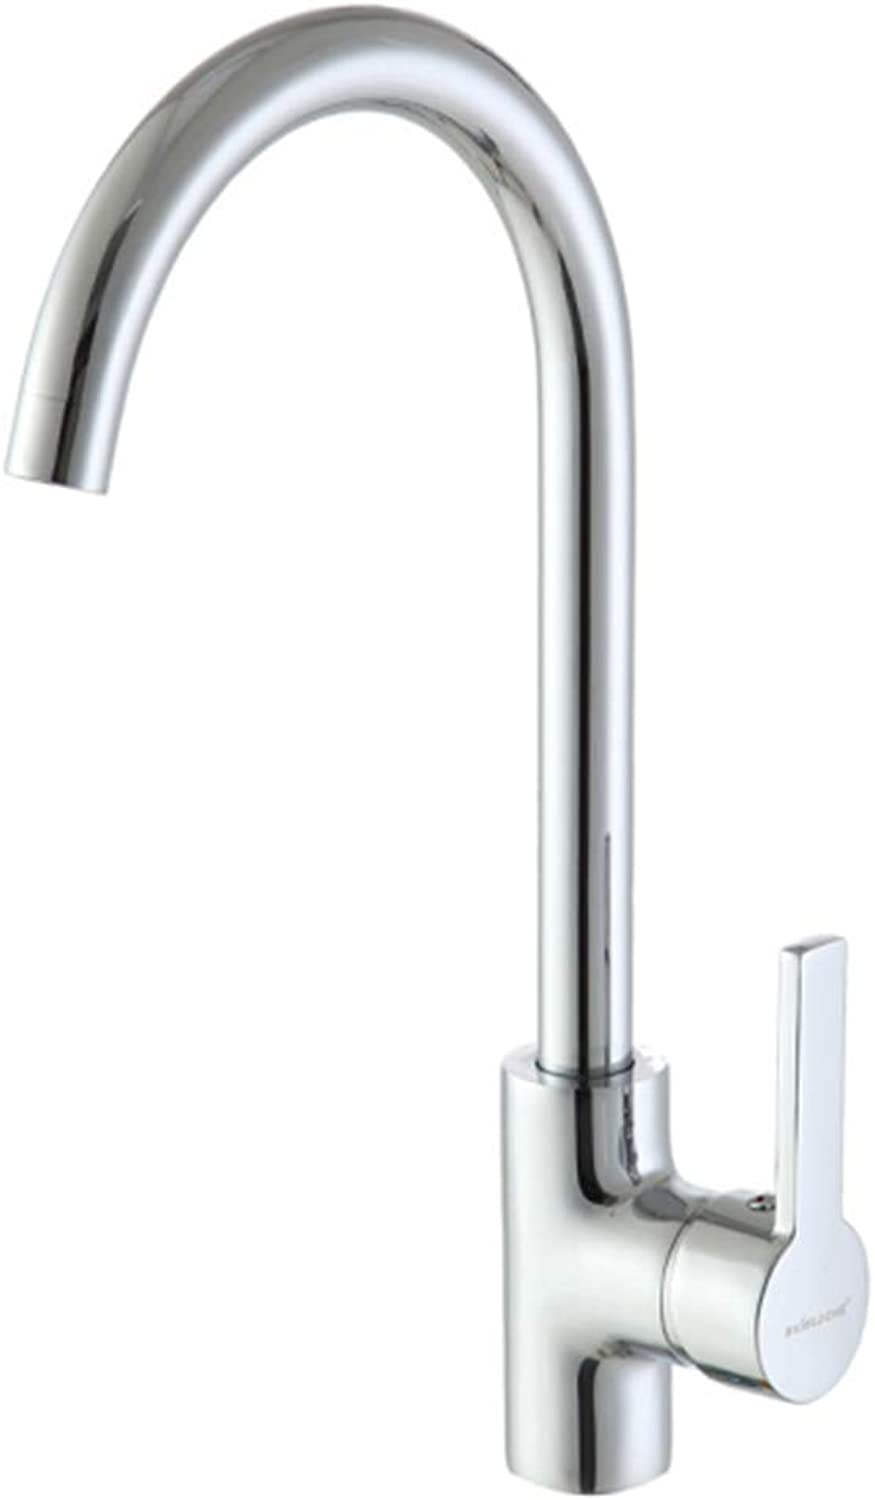 Kitchen Faucet Tapstainless Steelkitchen Faucet Proall Copper Kitchen Faucet Hot and Cold Wash Basin Flume Faucet Single Hole Swivel Tap